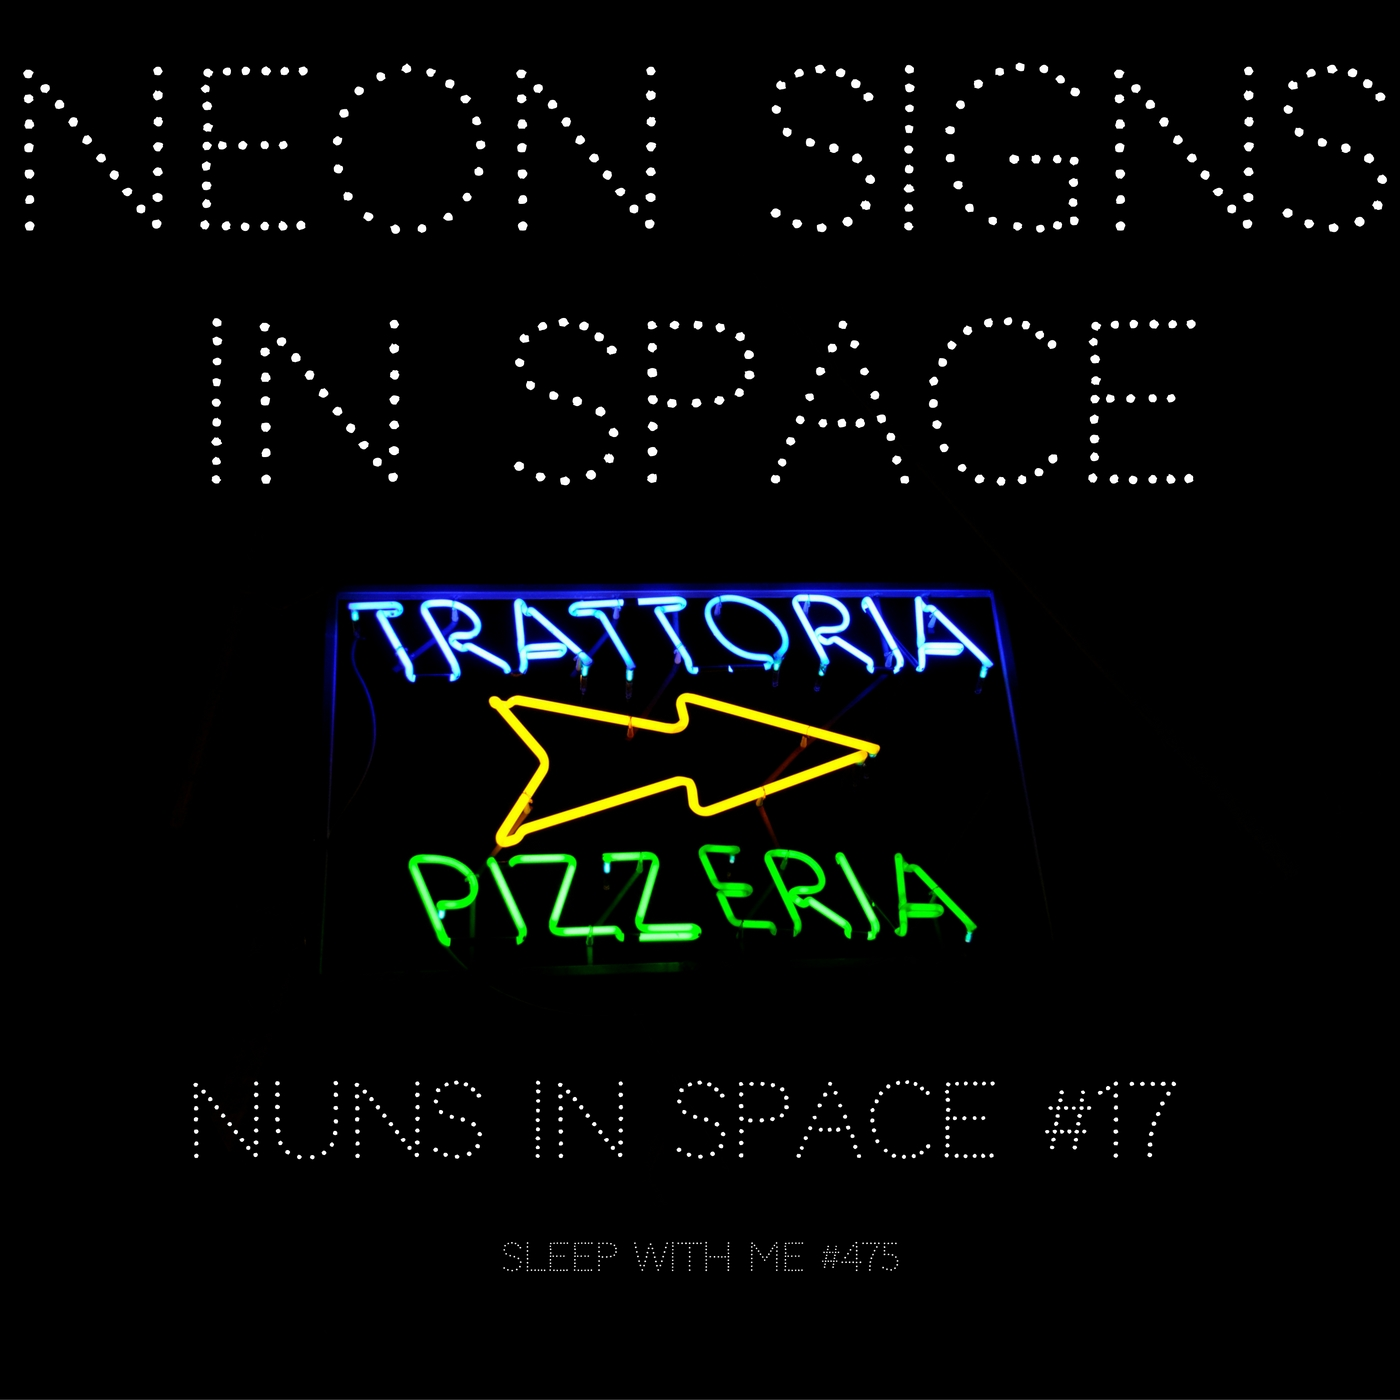 Neon Signs in Space | Nuns in Space #17 | Sleep With Me #475